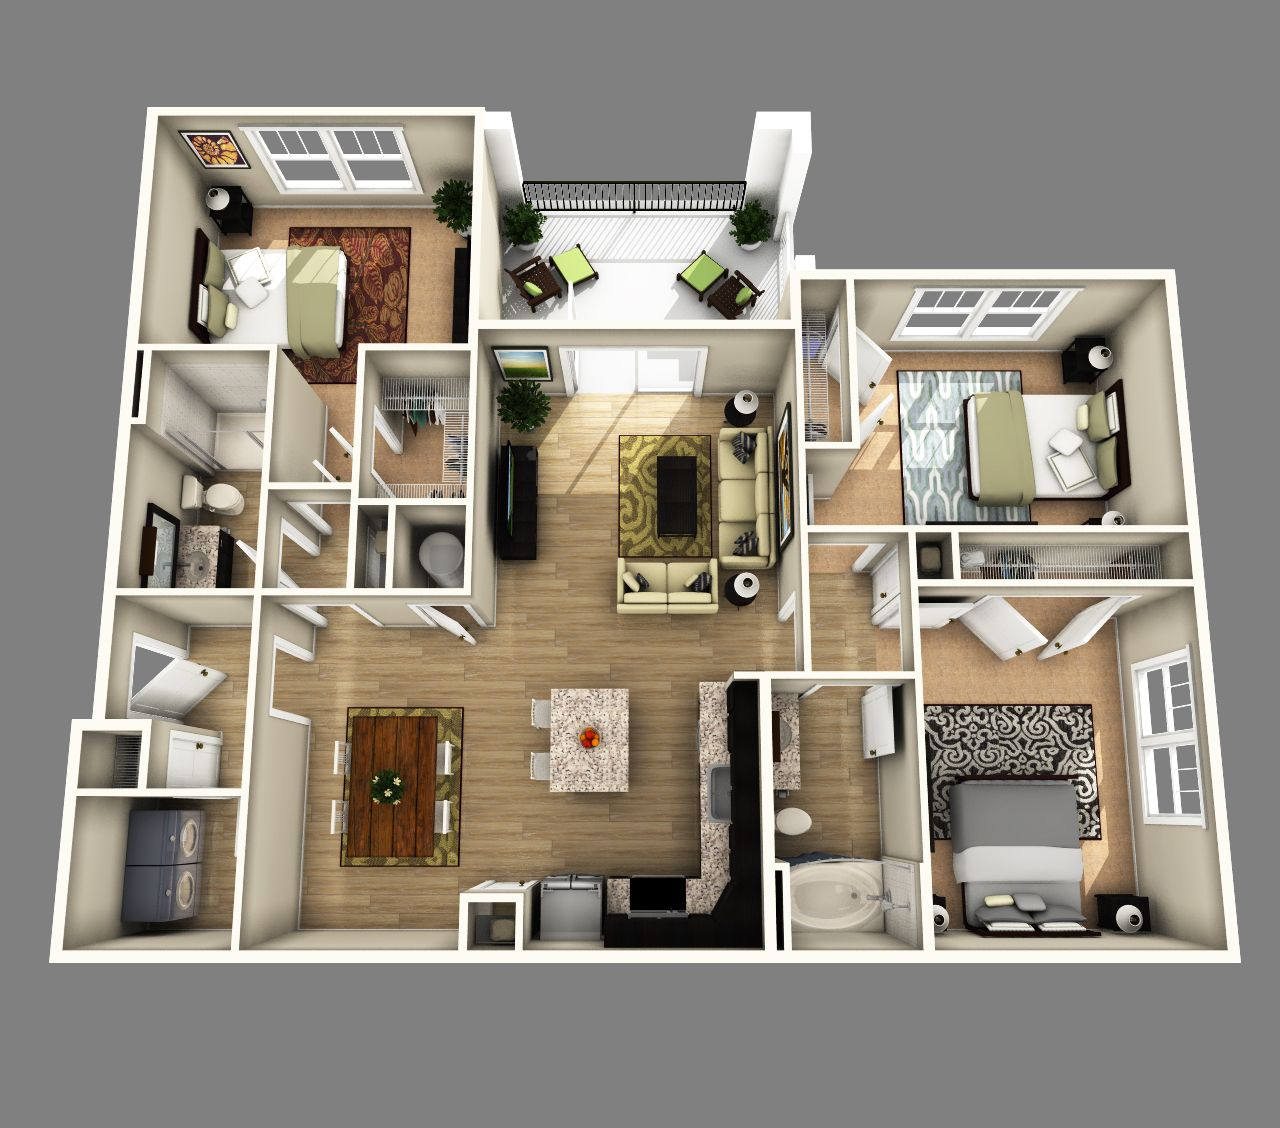 3 bedrooms apartments for Floor plan 4 bedroom 3 bath